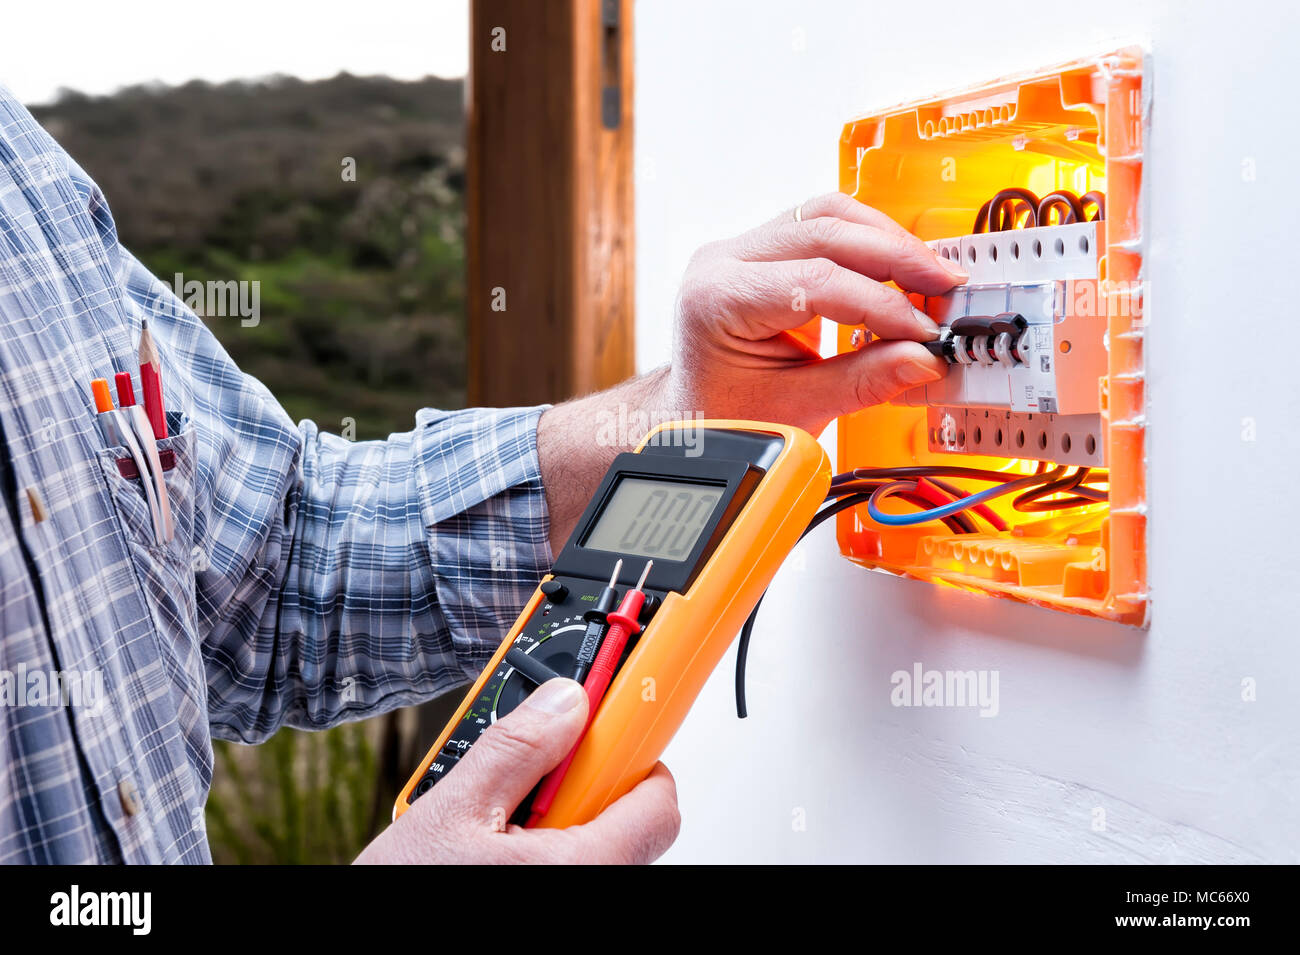 Residential Electrical Repair Stock Photos Residential Electrical